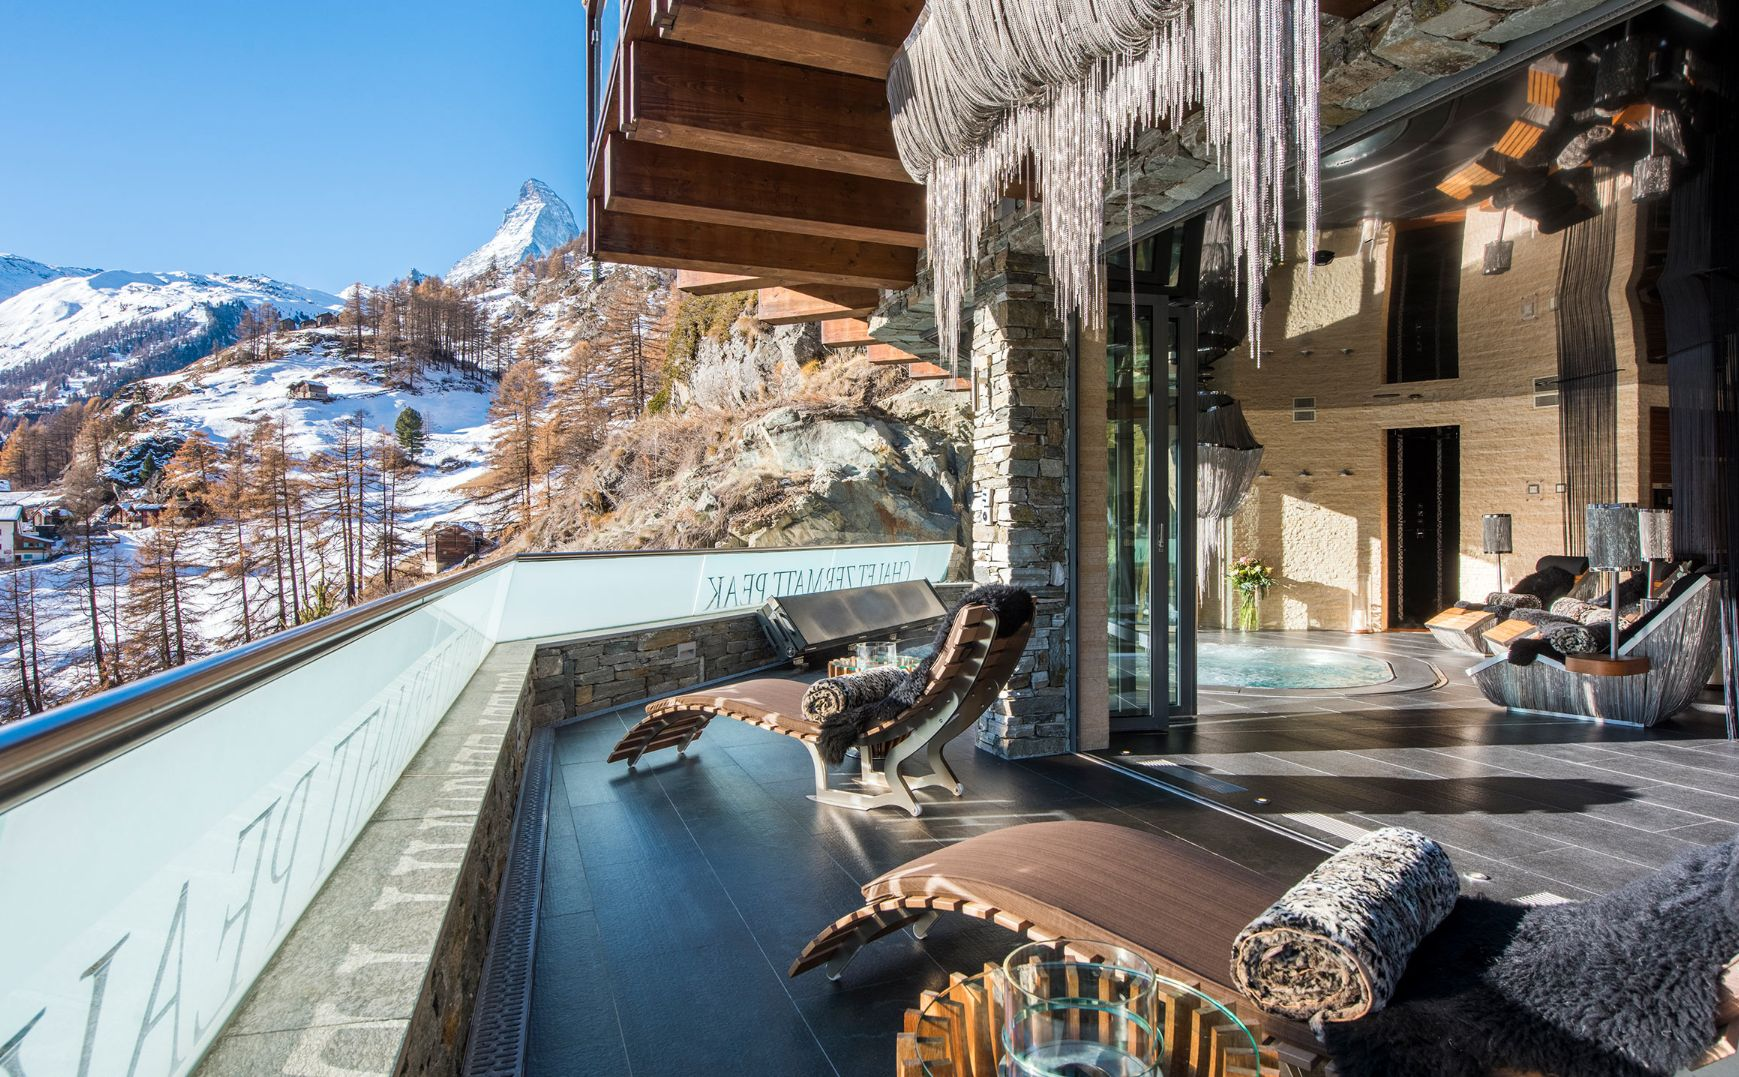 yoga in the alps, Zermatt yoga, ski chalet yoga, alps yoga holiday